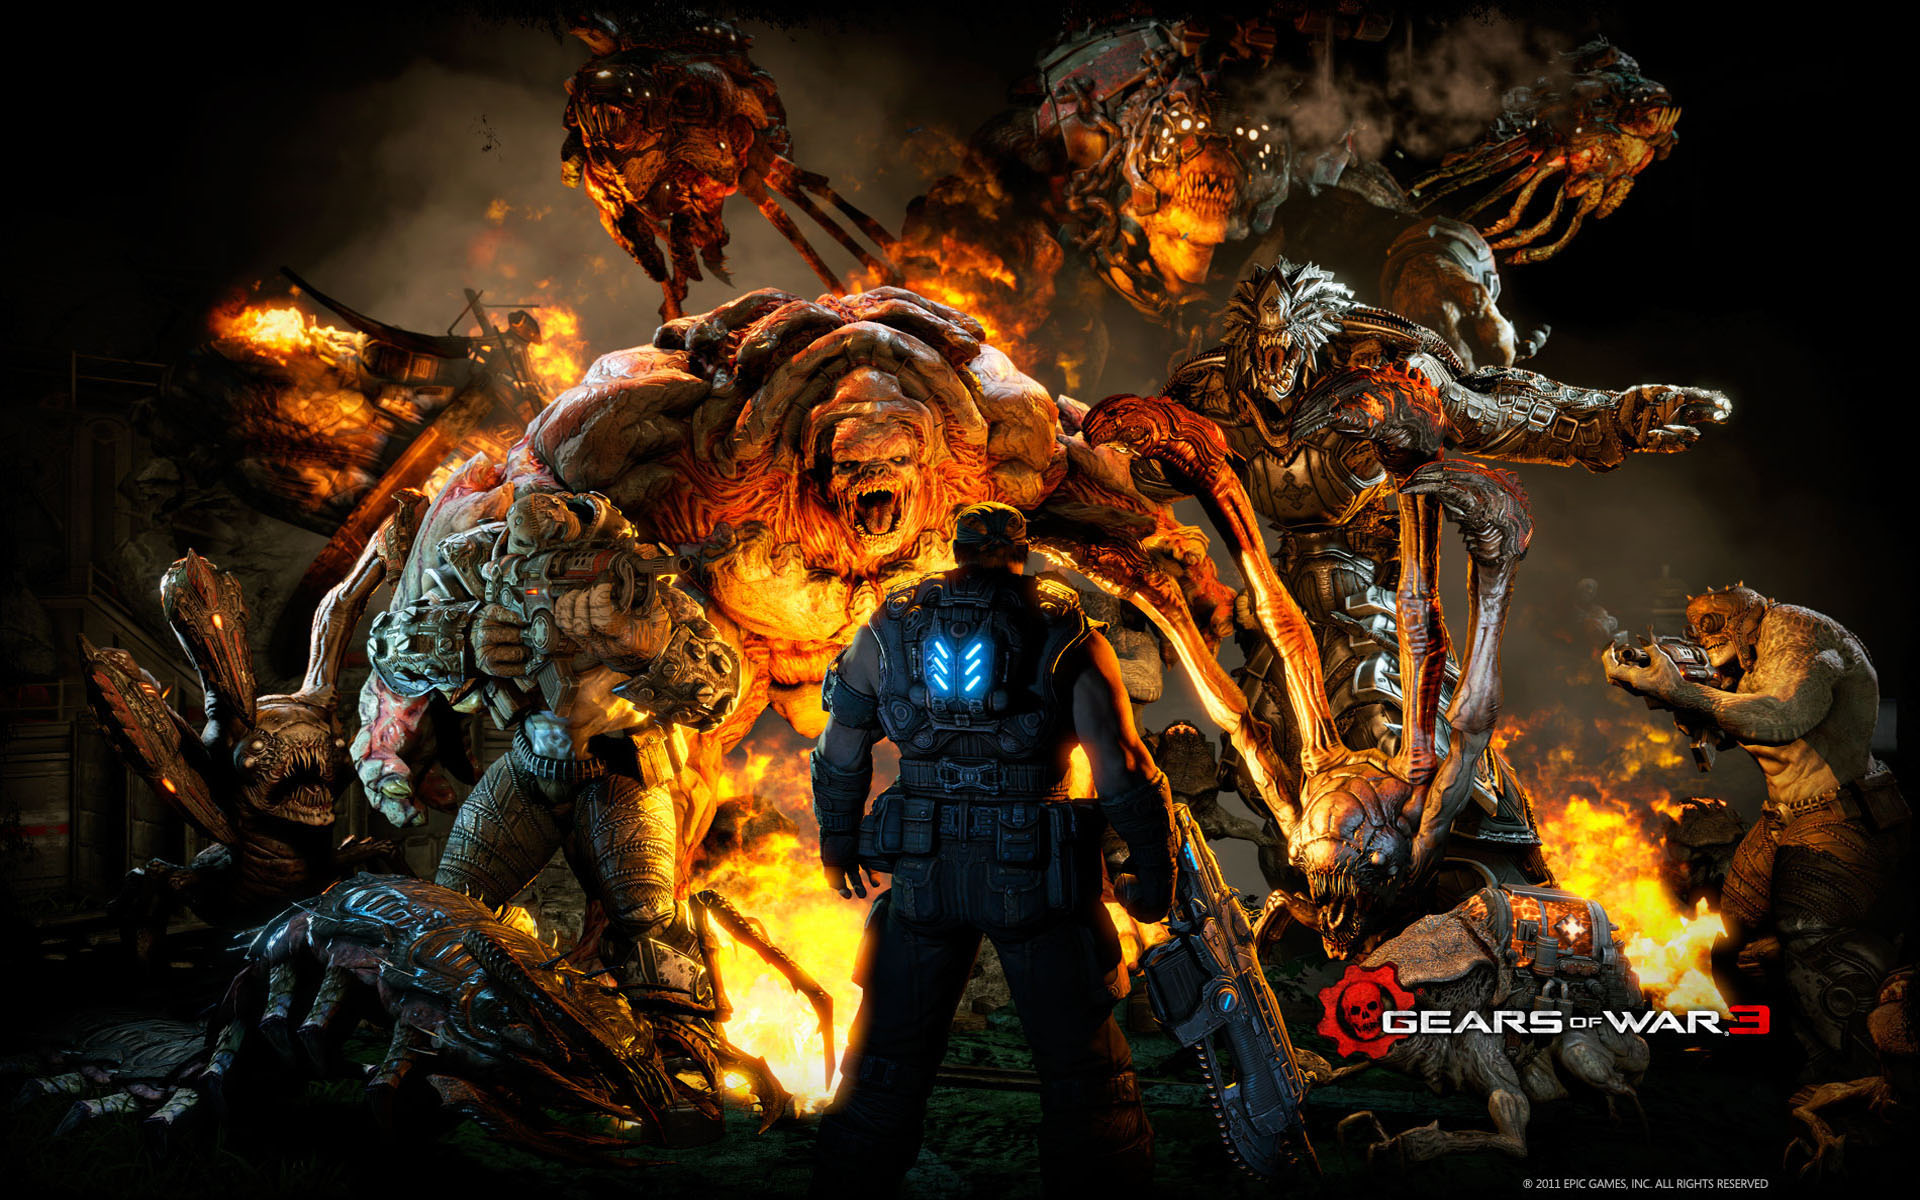 High Resolution Wallpapers Pictures: Gears Of War 3